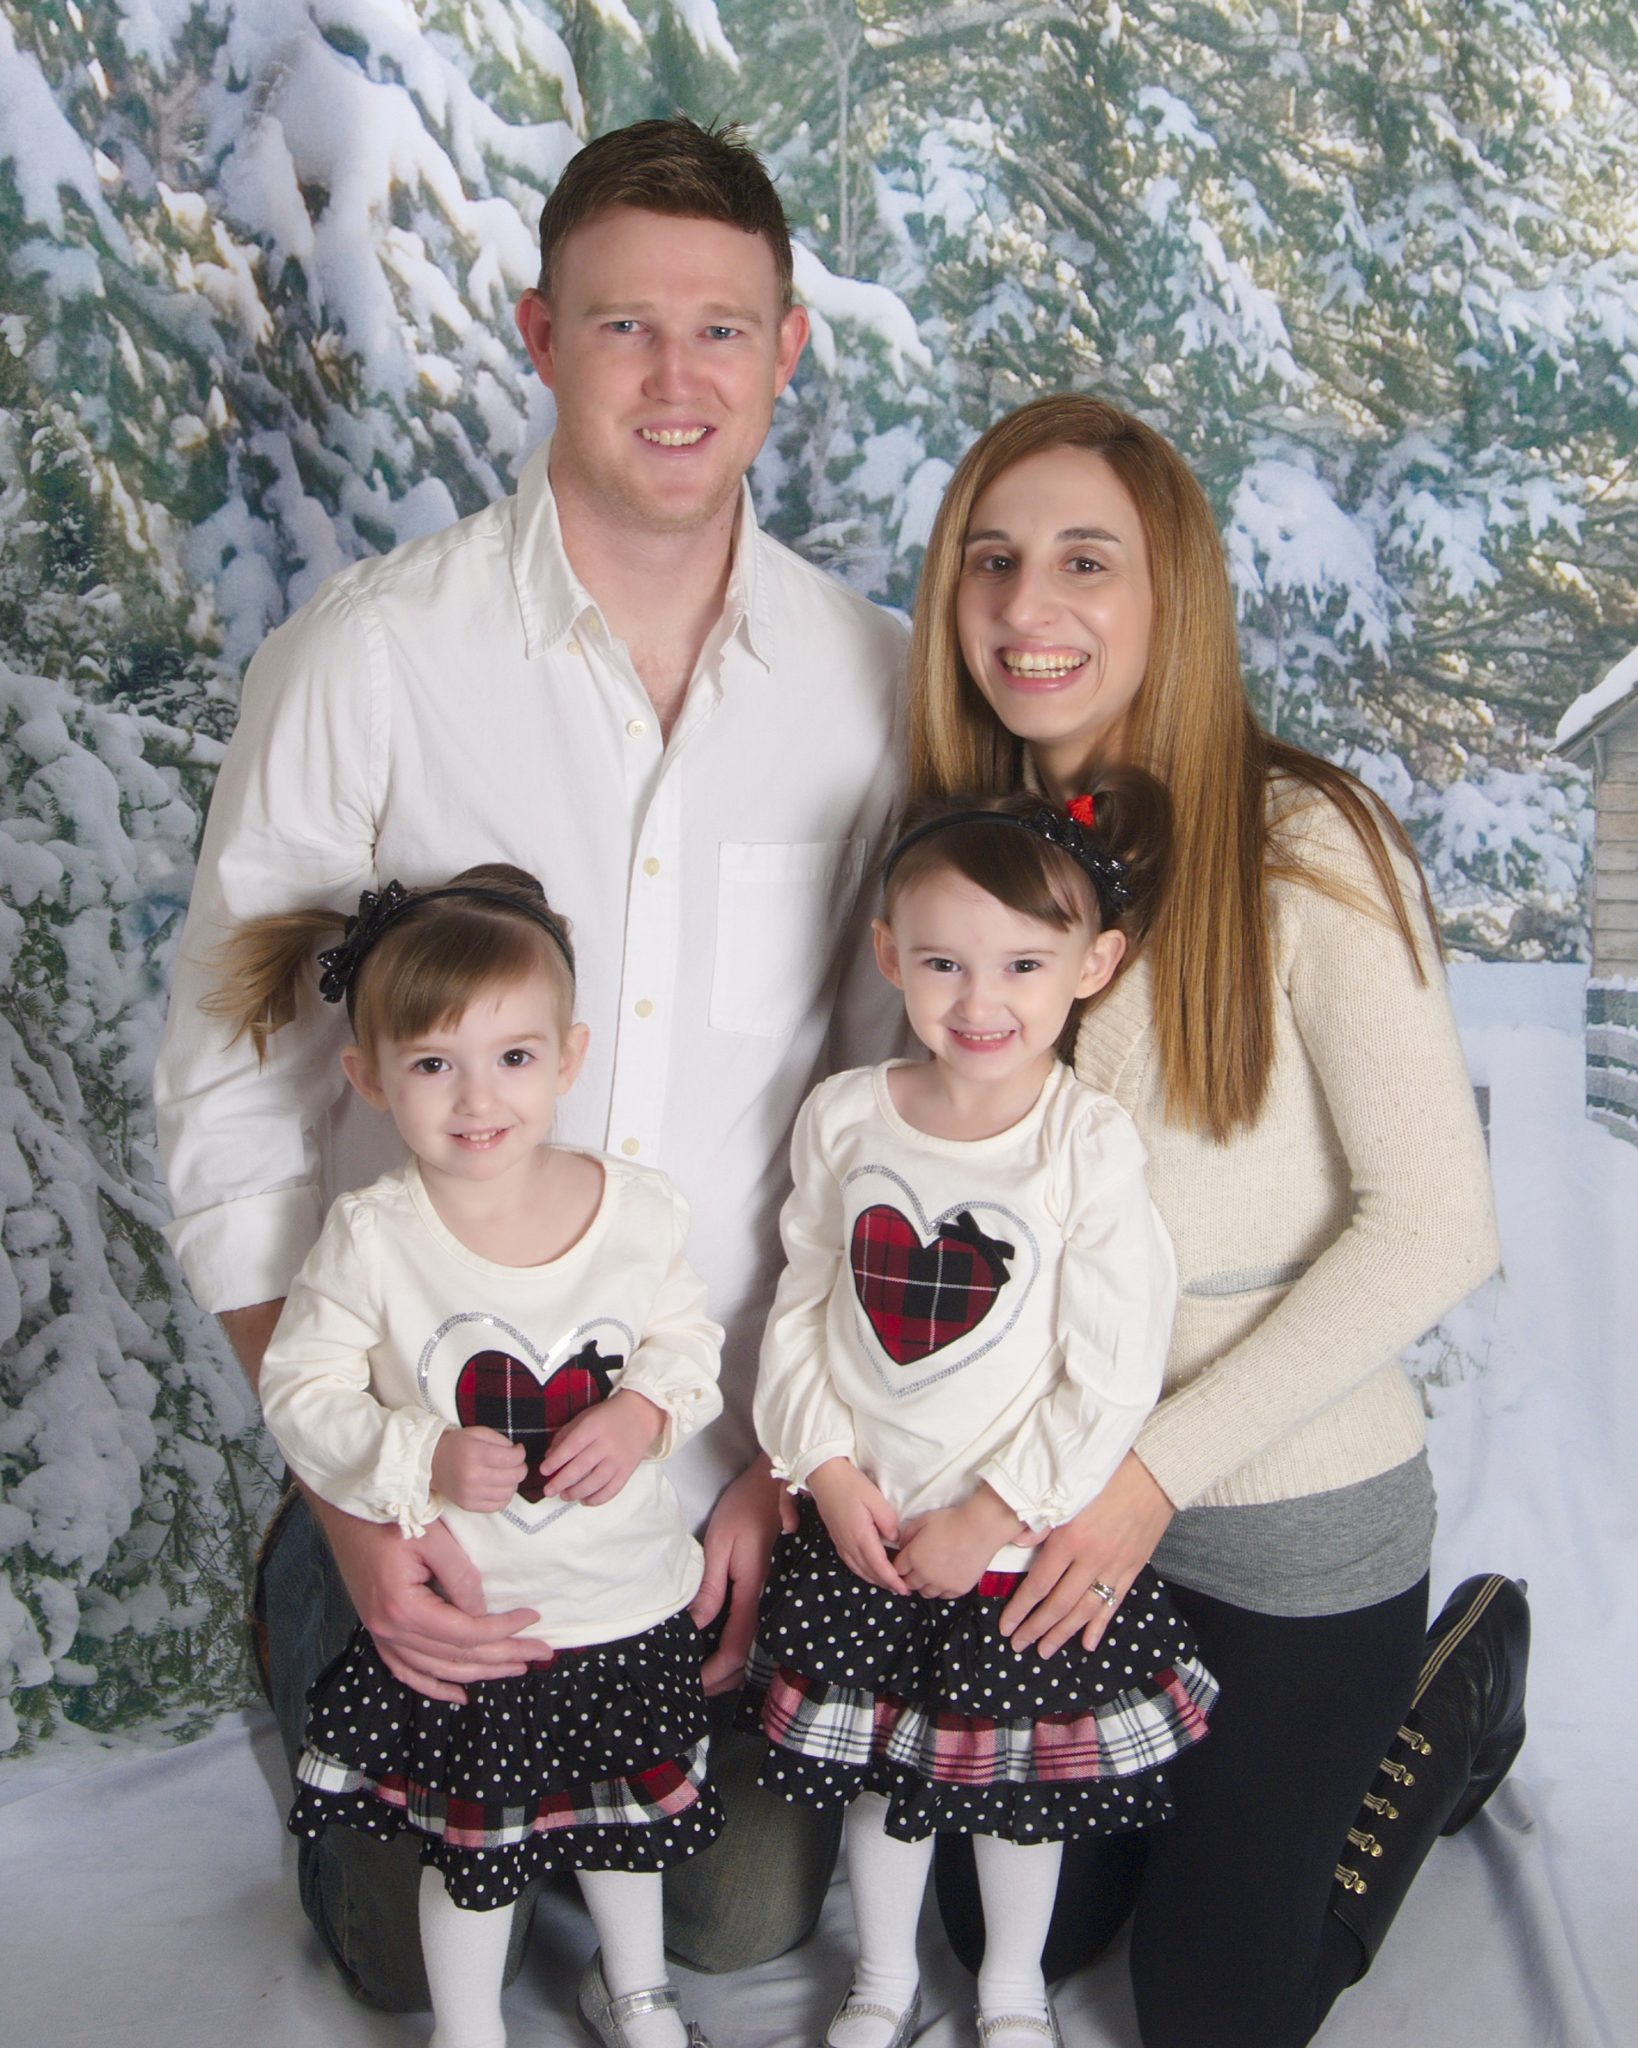 Christmas 2012 - Old & Outdated Family Photo os the Four Of Us